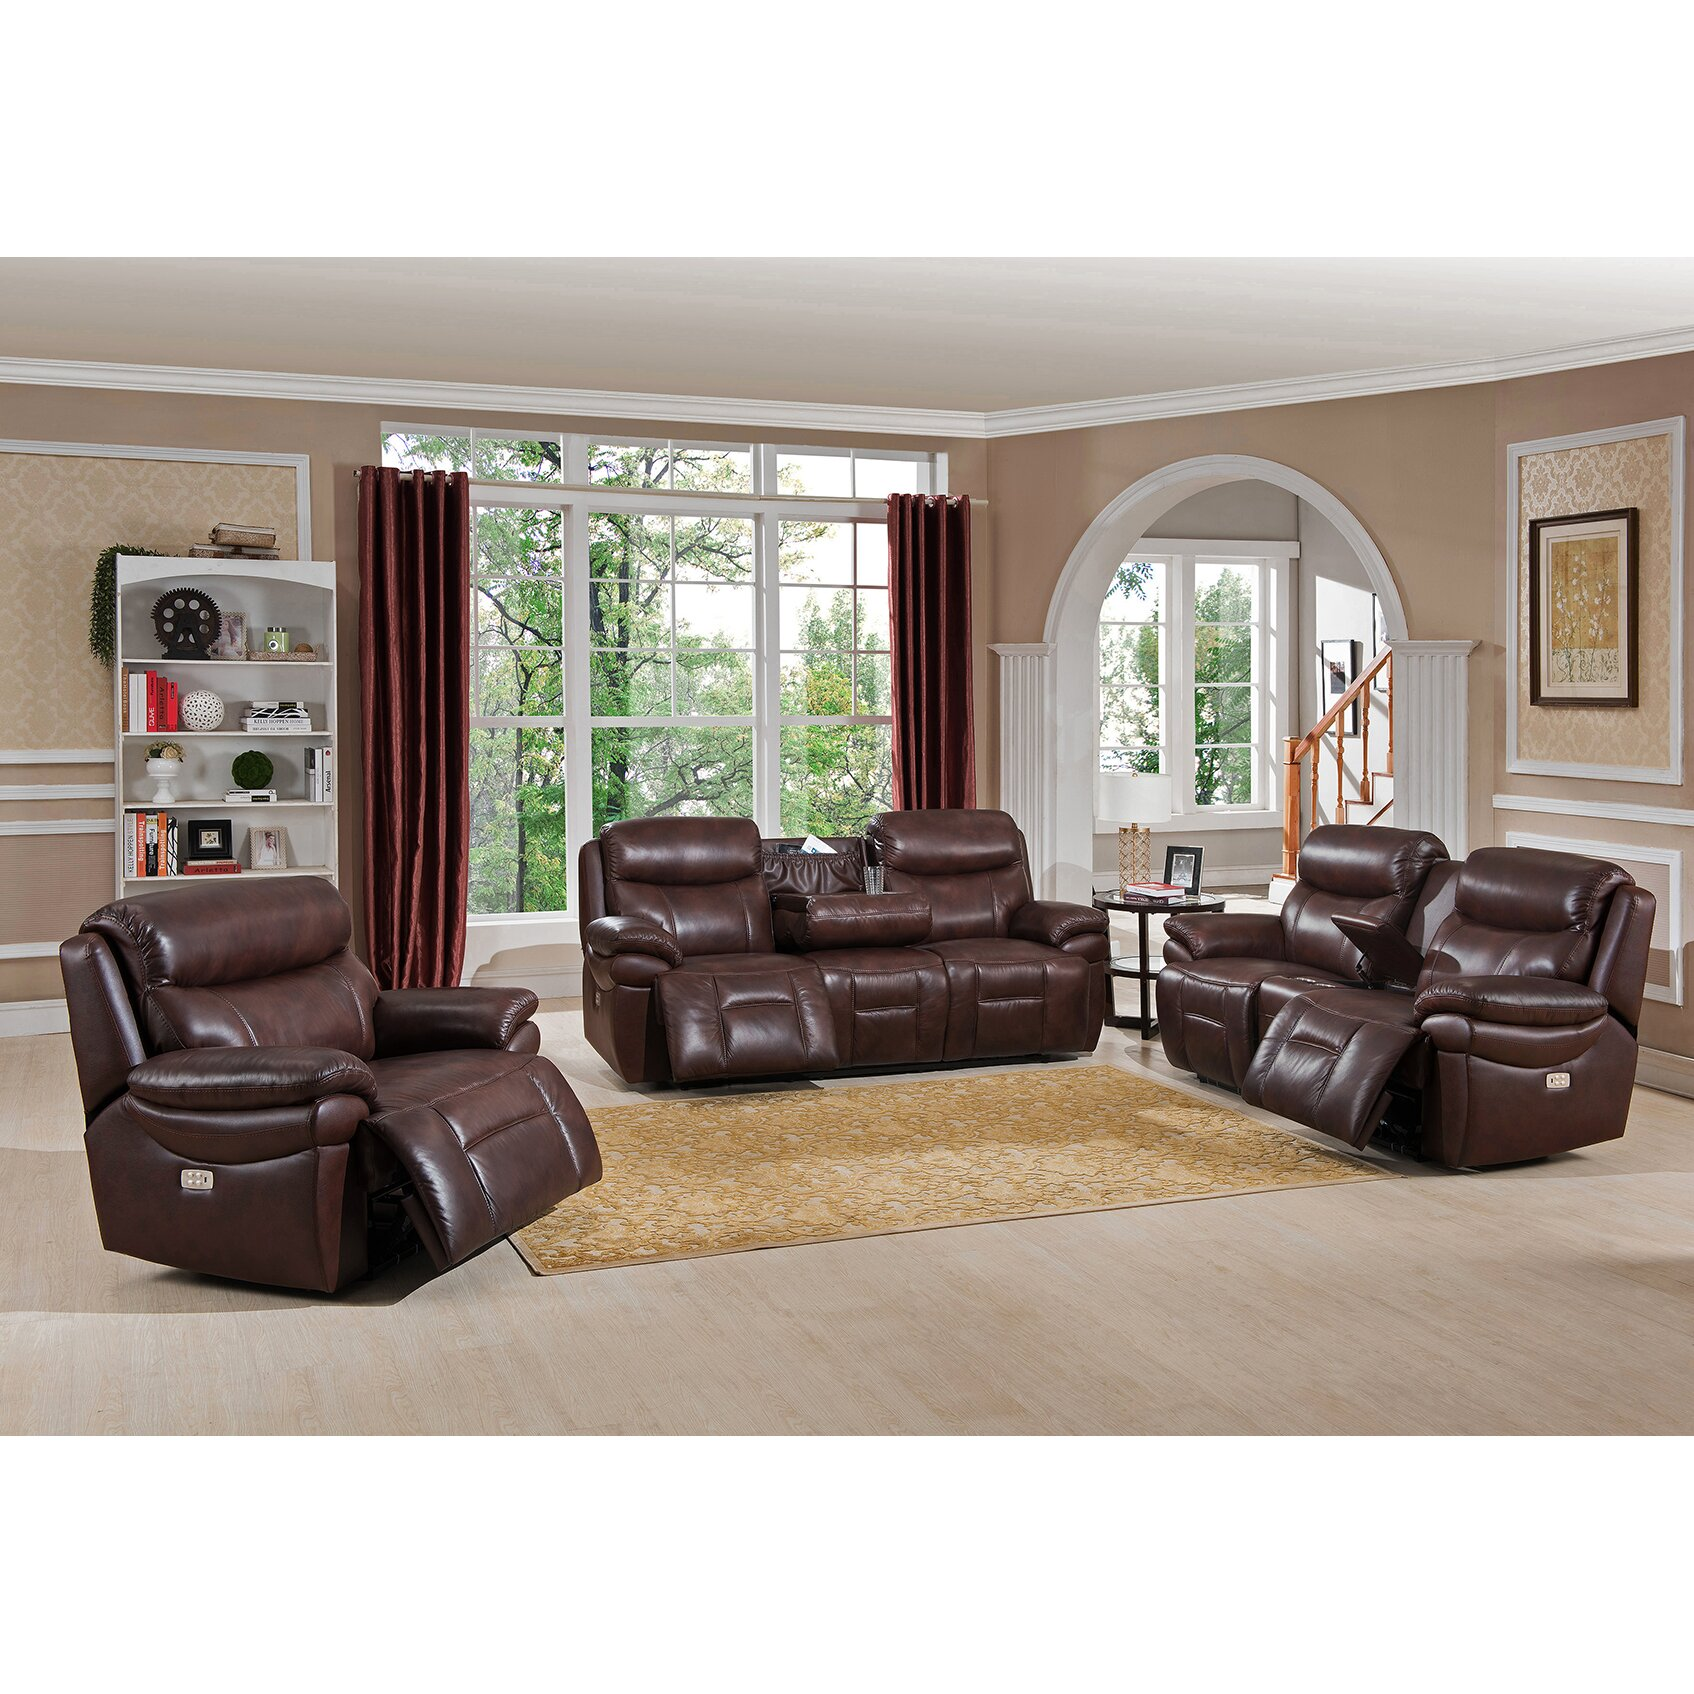 Amax sanford 3 piece leather power reclining living room for Living room sets